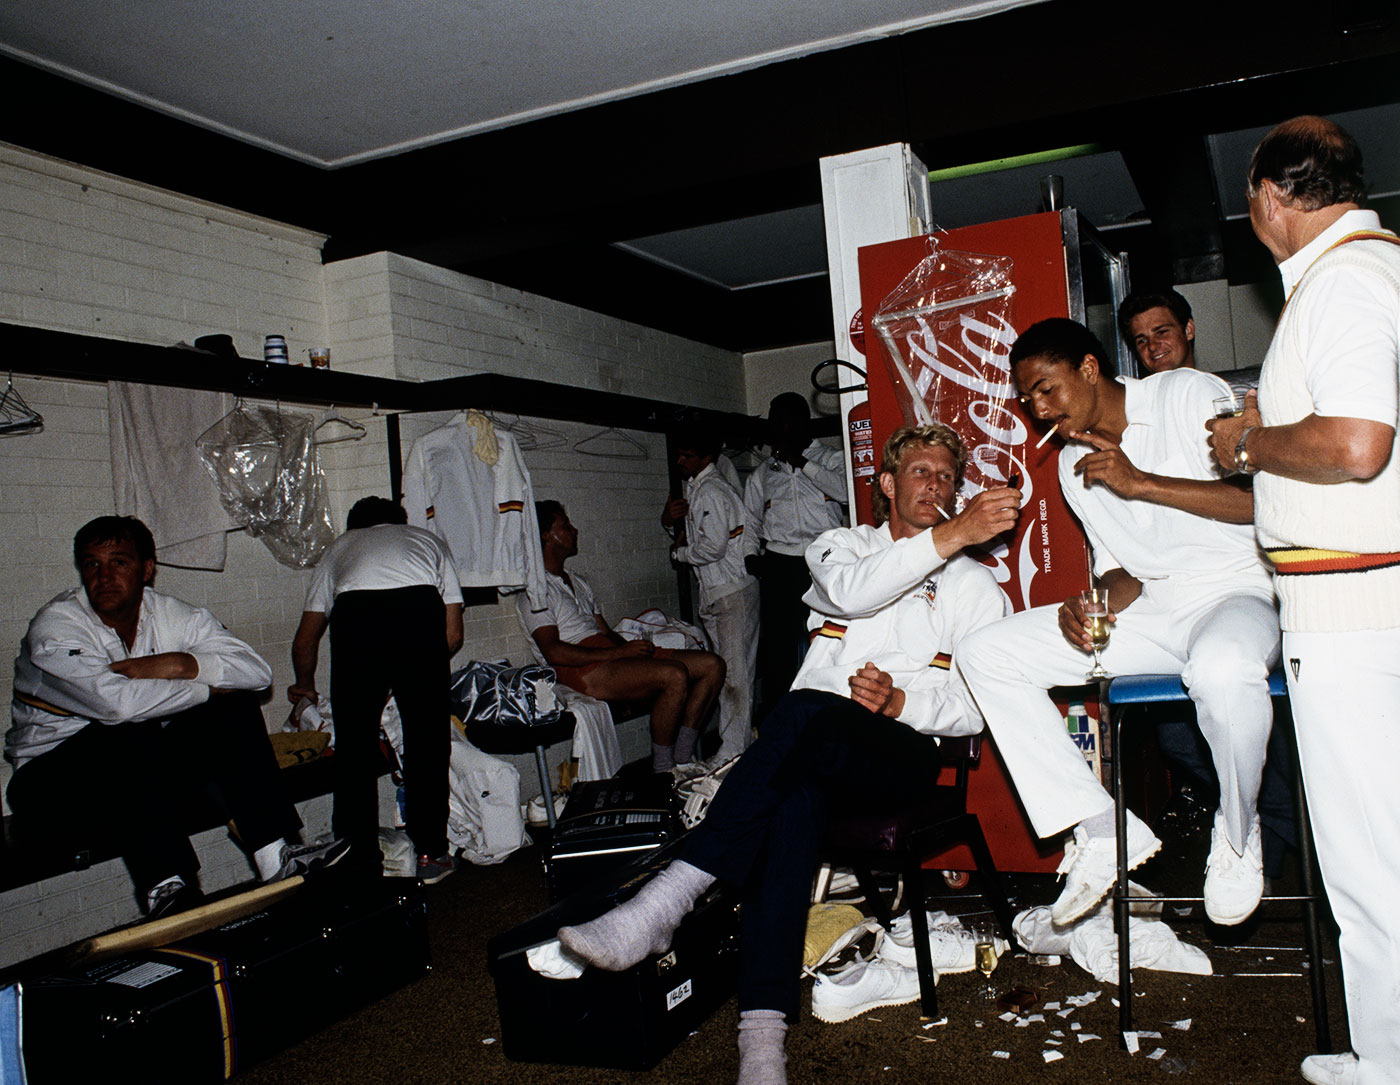 Graham Dilley lights a cigarette for Phil DeFreitas after England's seven-wicket win in the Brisbane Test, 1986